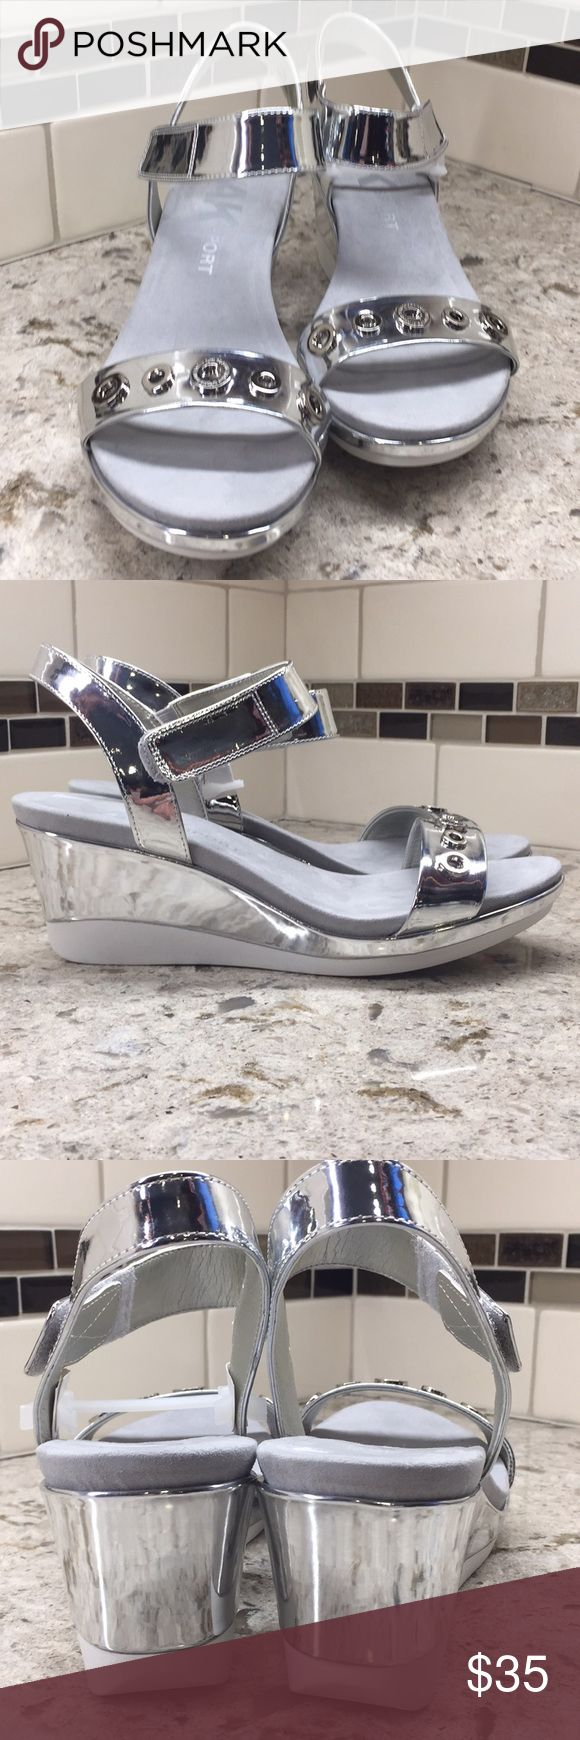 "Anne Klein Sport ""Pelonia"" silver wedge sandals New in box silver metallic wedge sandal with lots of style and comfort 3 inch wedge back and 1 inch platform front. Velcro ankle strap closure and grommet embellishment for extra style Anne Klein Sport Shoes Wedges"